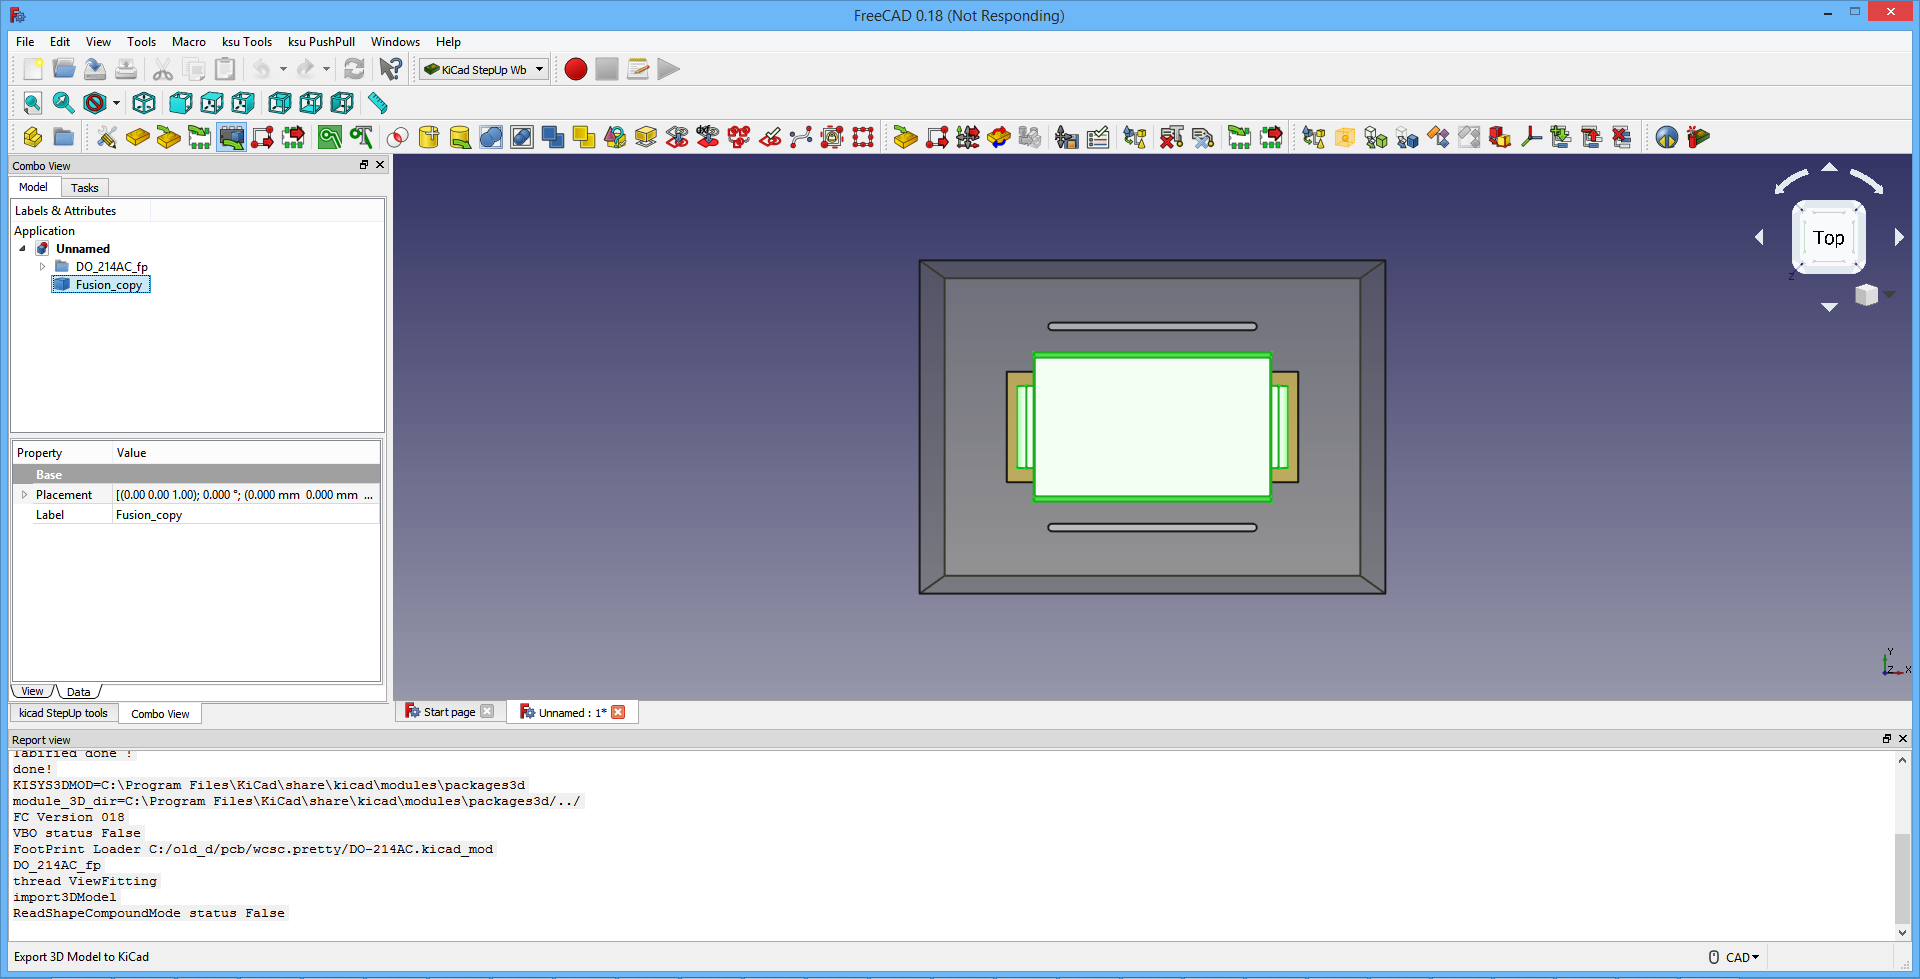 FreeCAD 0 18 freezes after clicking